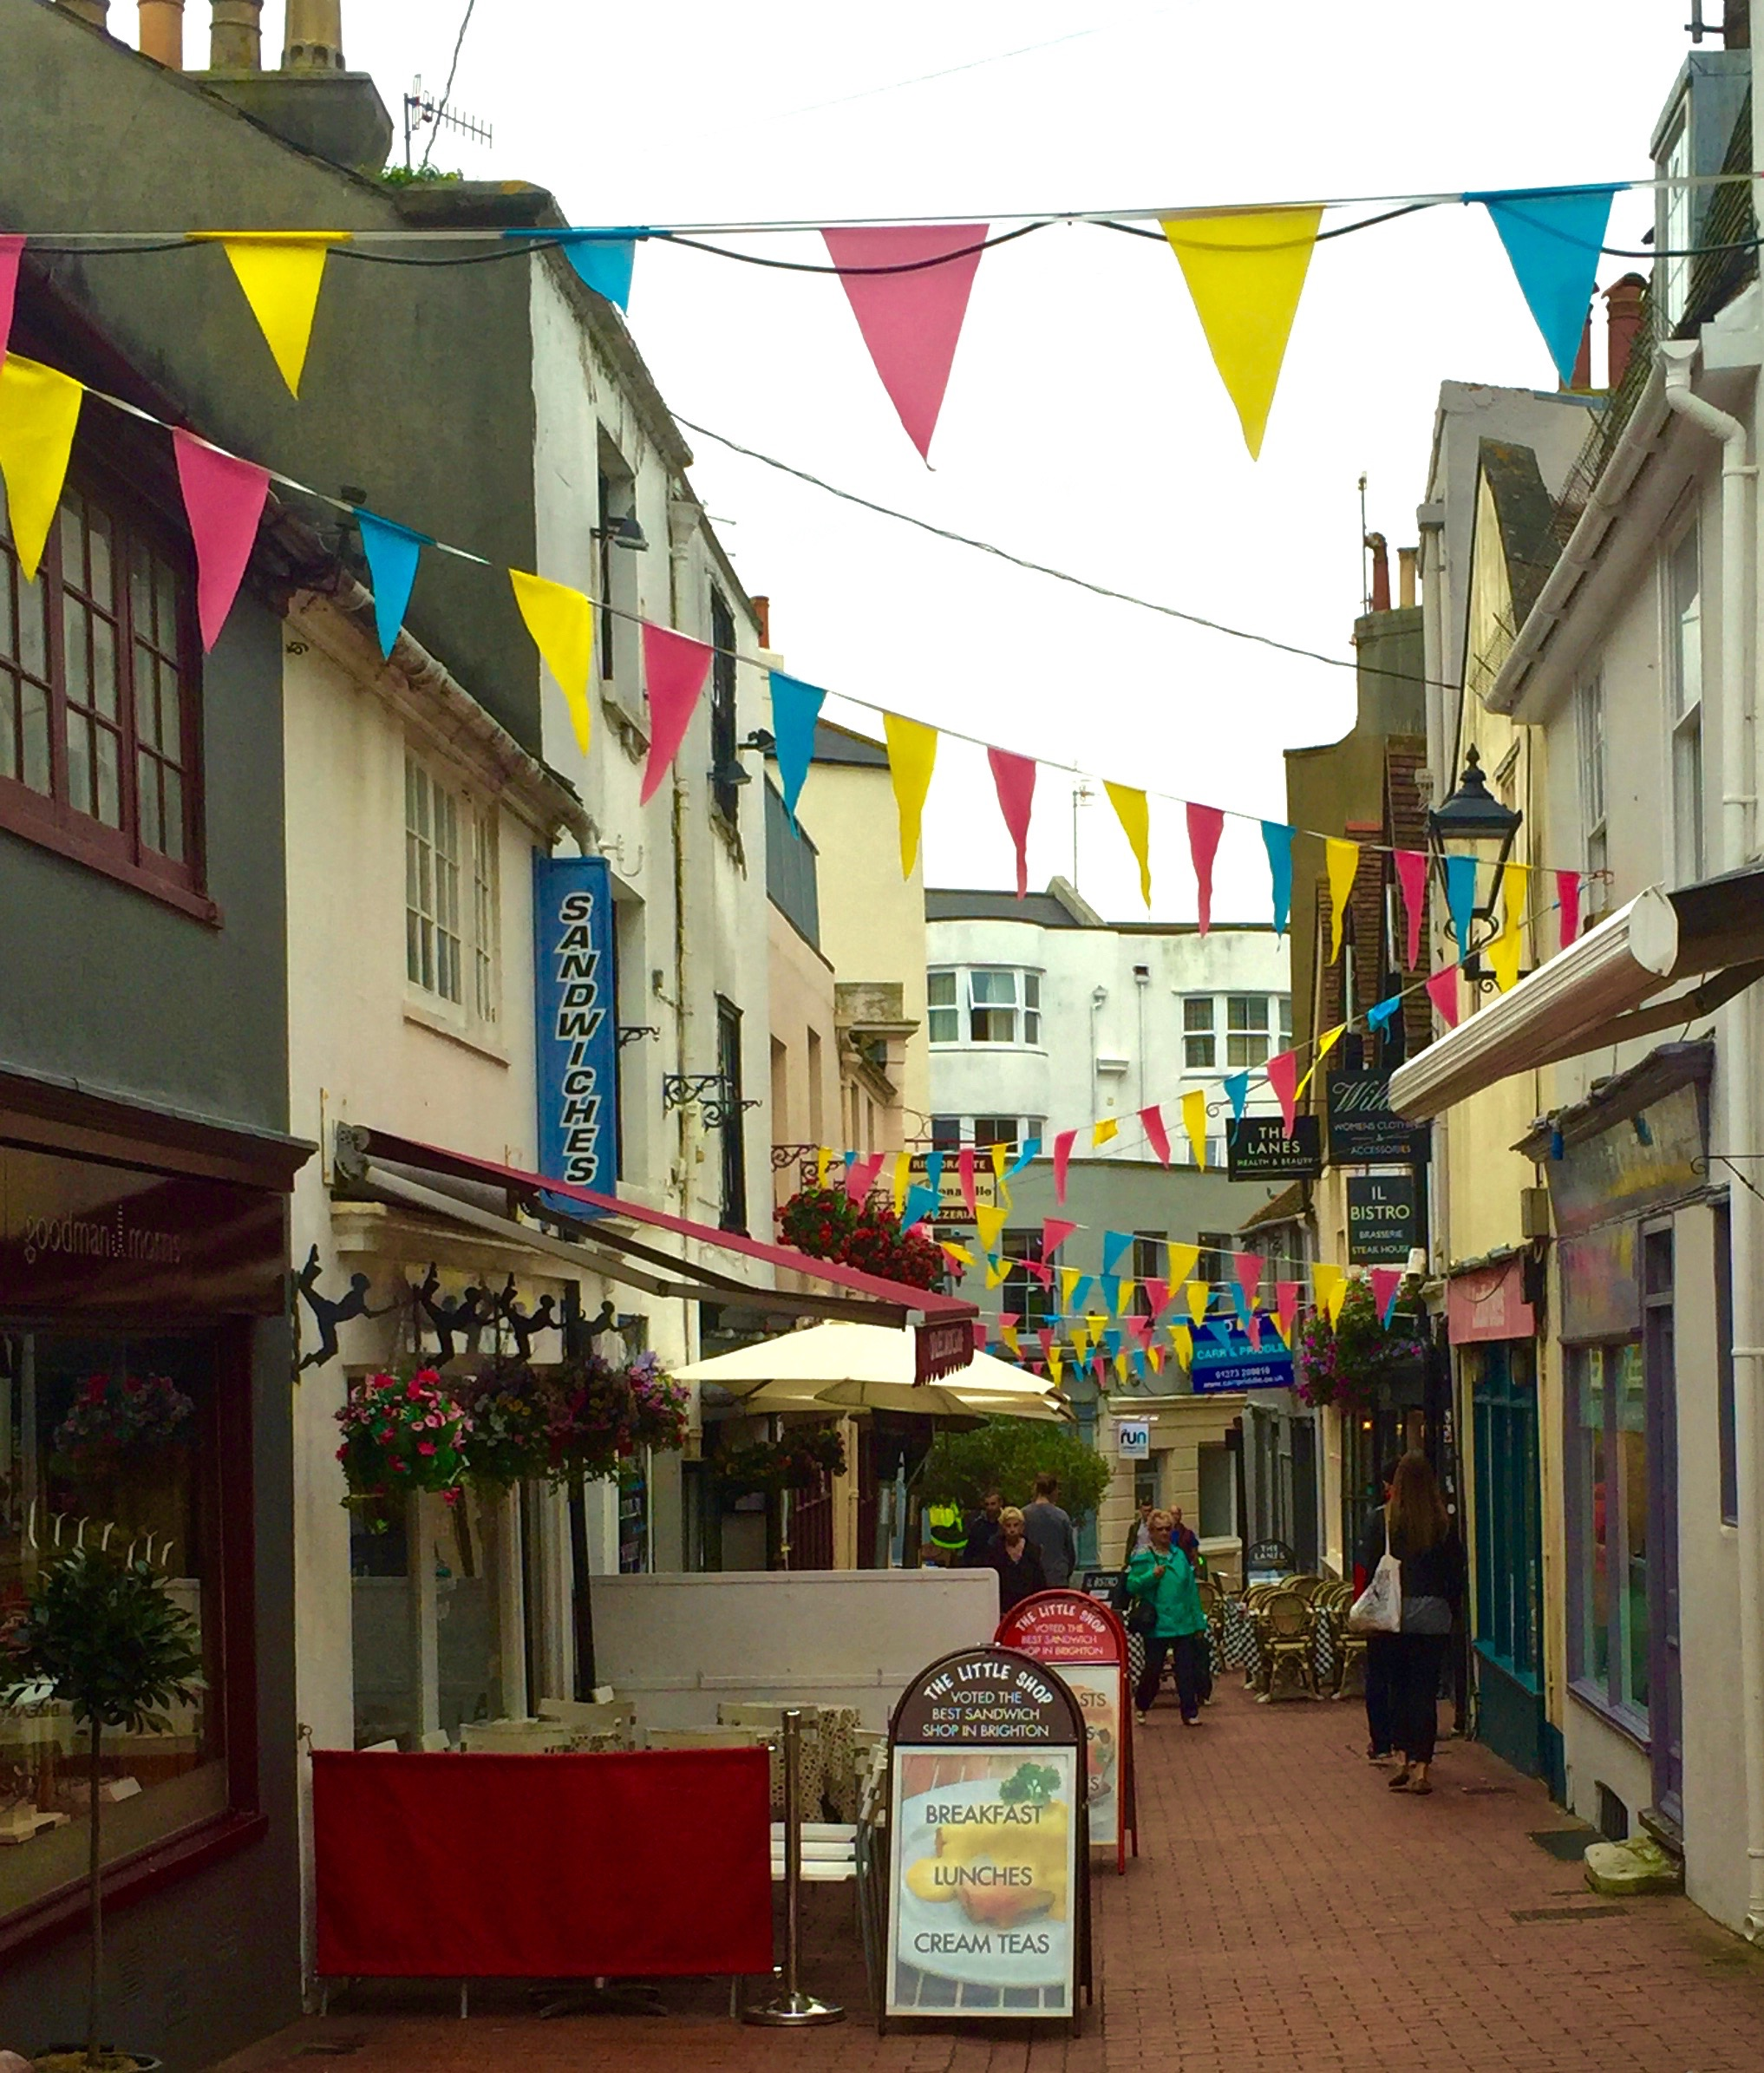 5 Fun Free Things To Do In Brighton, England - Home Behind - The ...